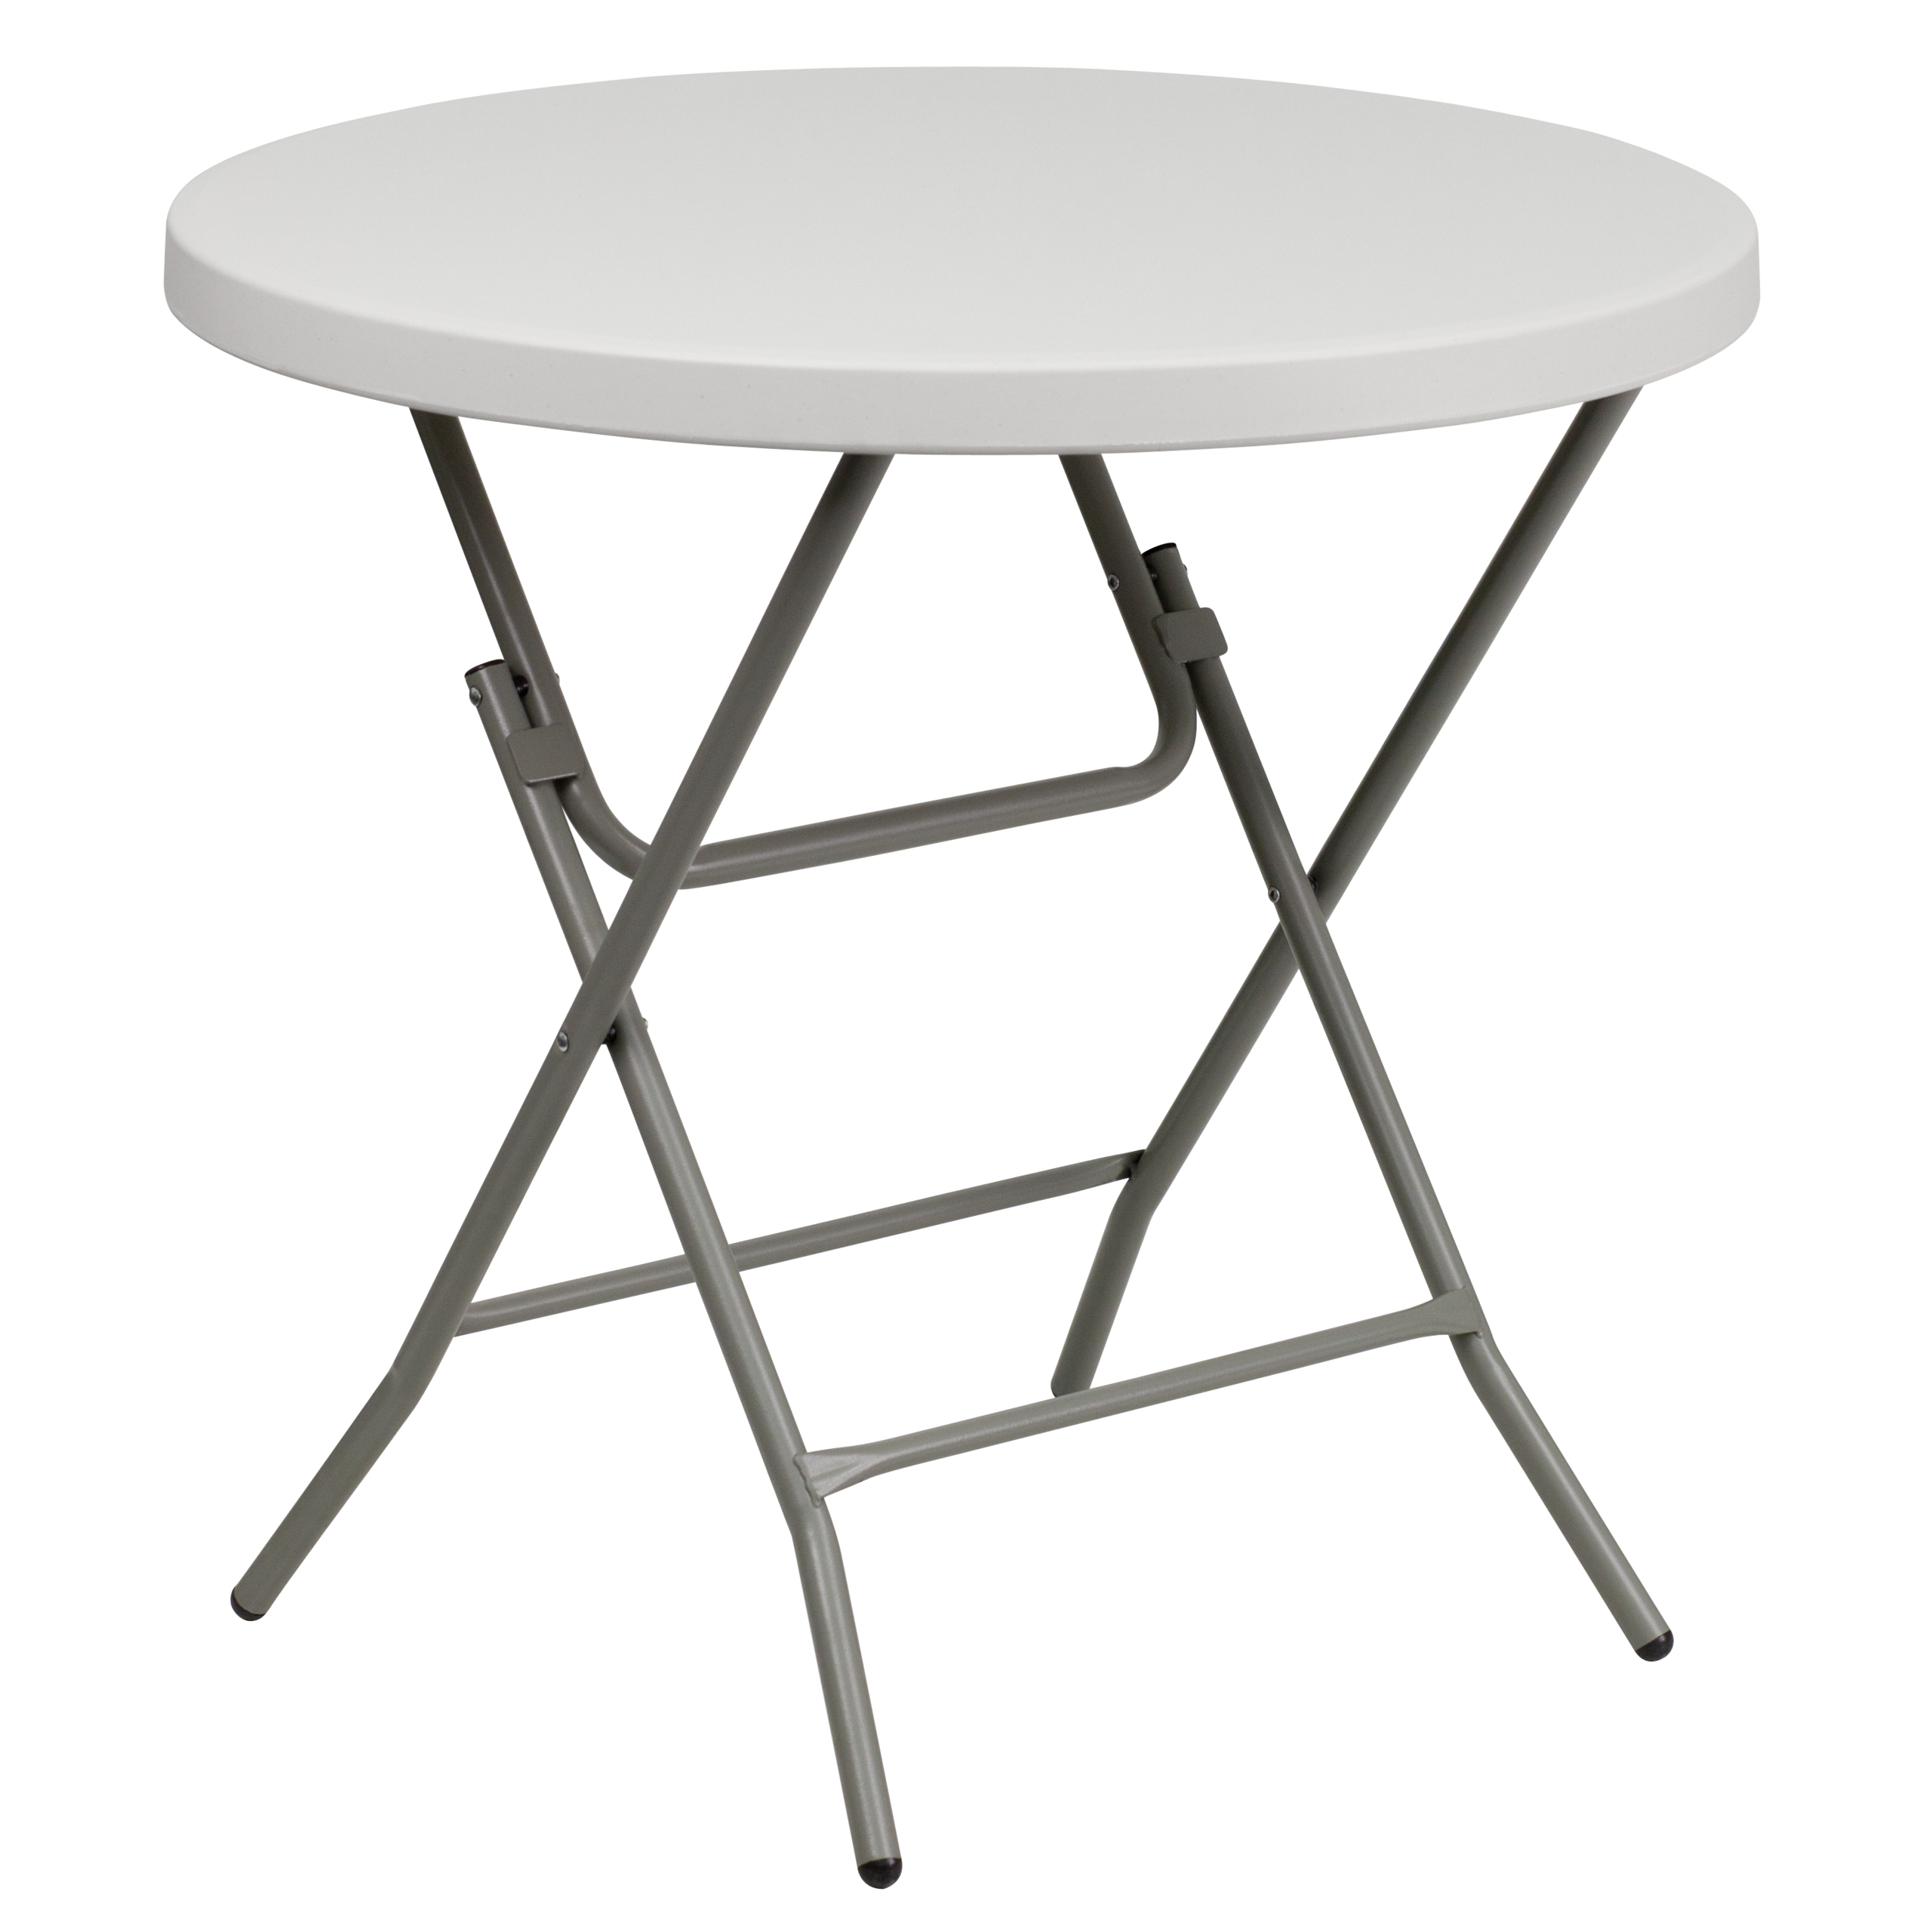 Incroyable Flash Furniture Square Granite White Plastic Folding Table, 27 Inch